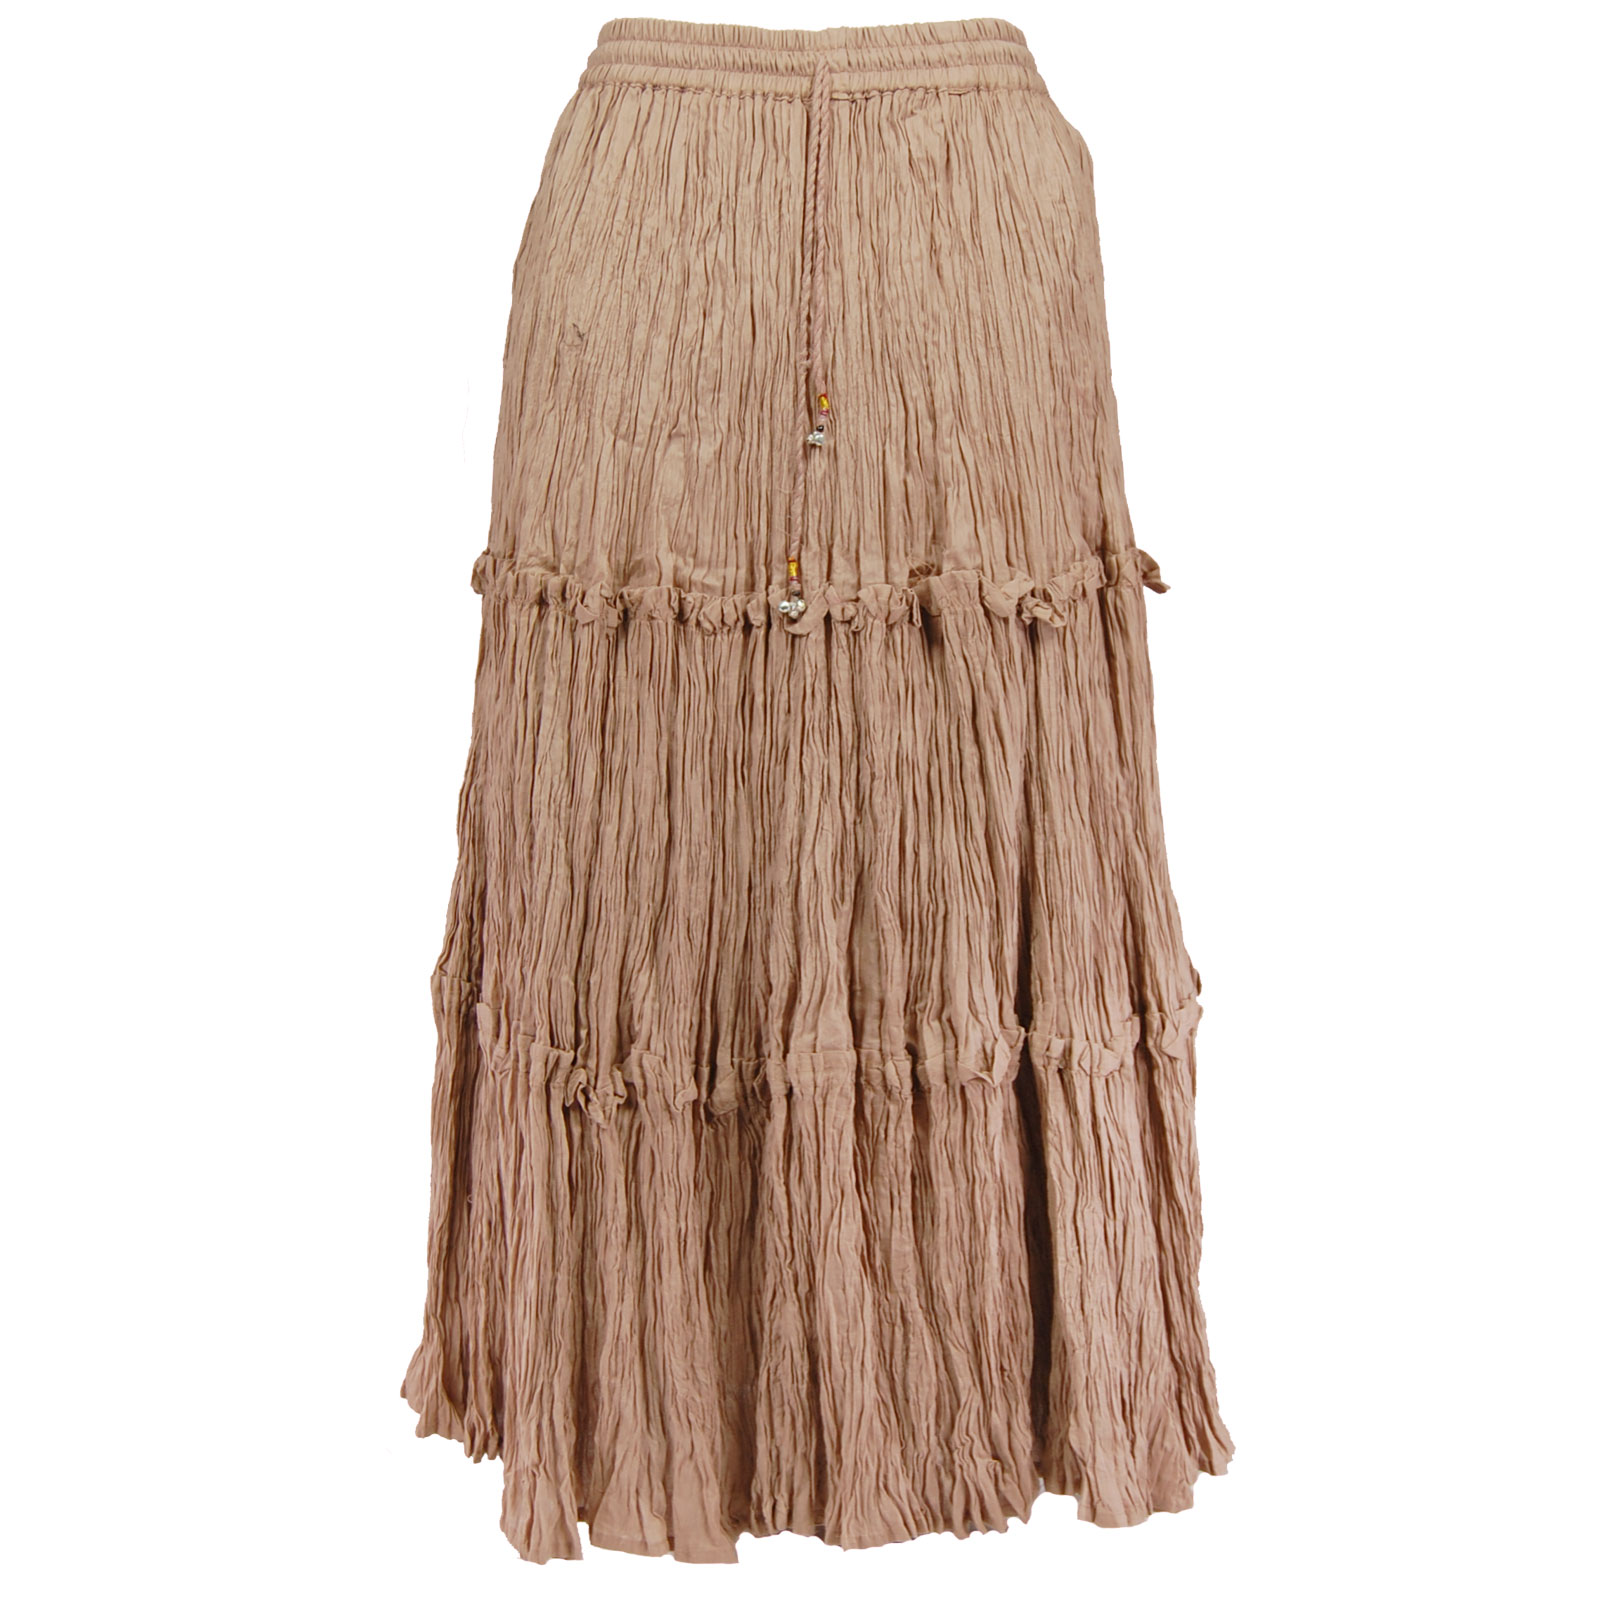 Wholesale Skirts - Cotton Three Tier Broomstick 500 & 529 Ankle Length - Light Brown - One Size (S-XL)